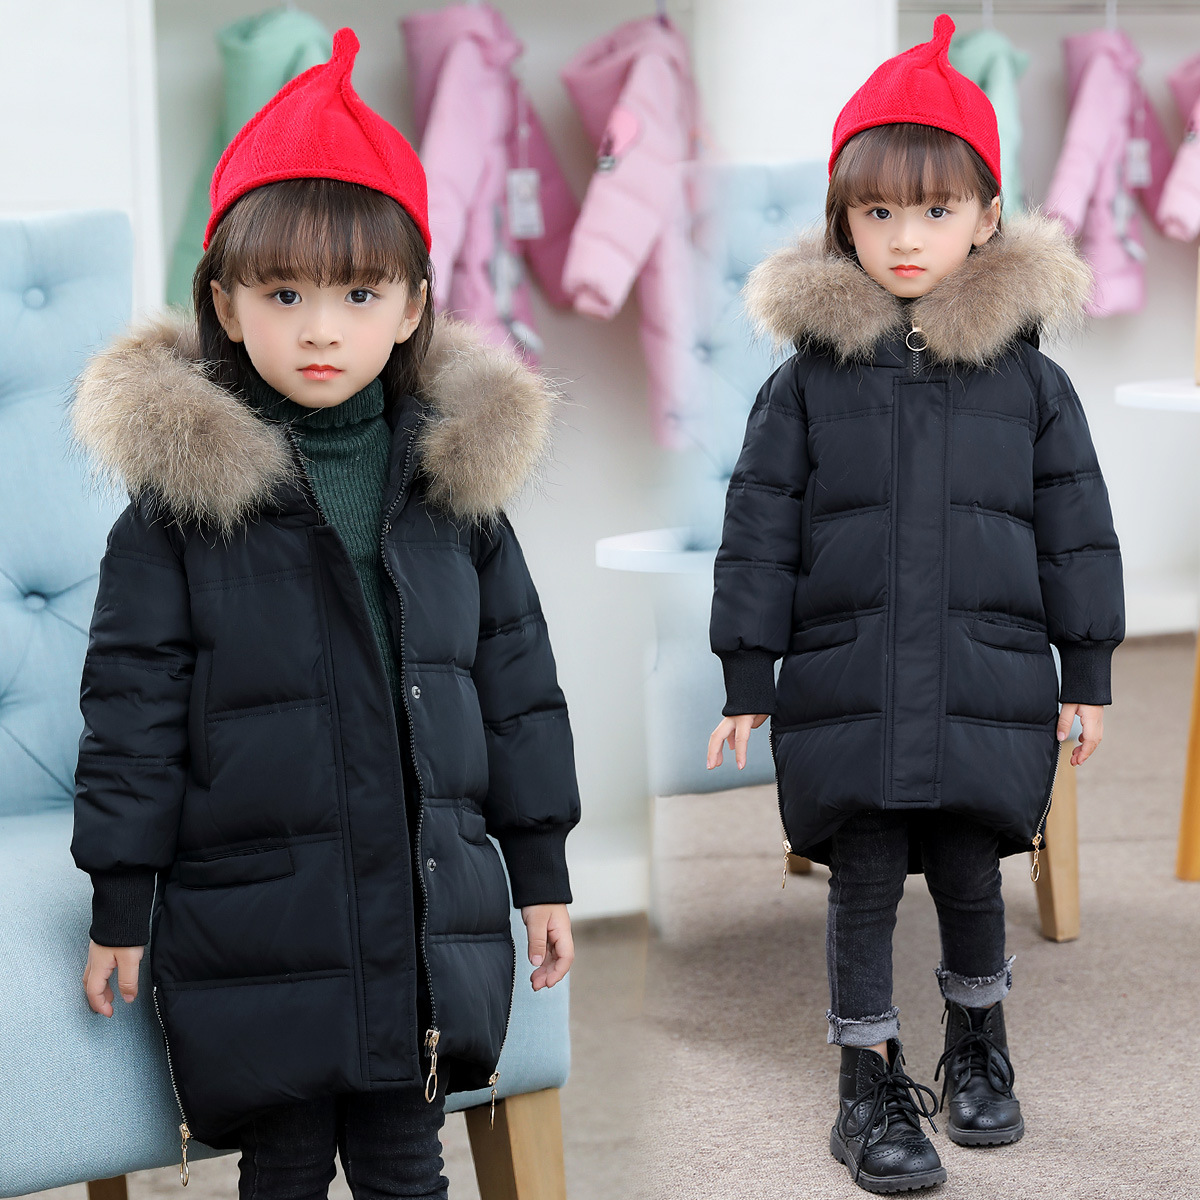 2017 Fashion Girl Winter Down Jackets Children Coats Warm Baby Thick Duck Down Kids Outerwears for Cold -30 Degree Jacket fashion girl winter down jackets coats warm baby girl 100% thick duck down kids jacket children outerwears for cold winter b332